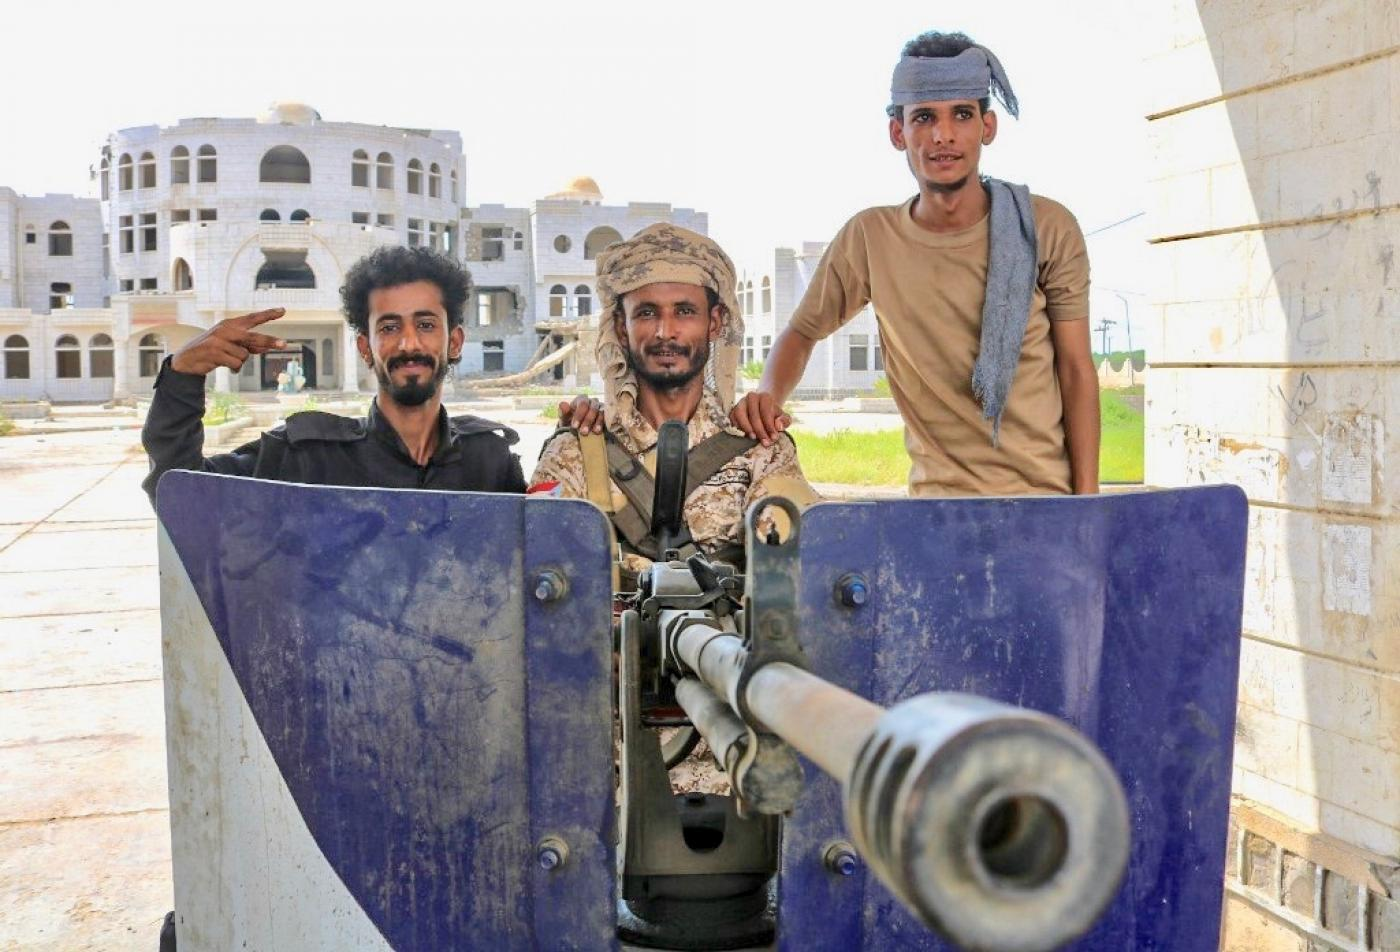 Yemen's separatist southern forces announce plans for self-rule, jeopardising Riyadh peace deal